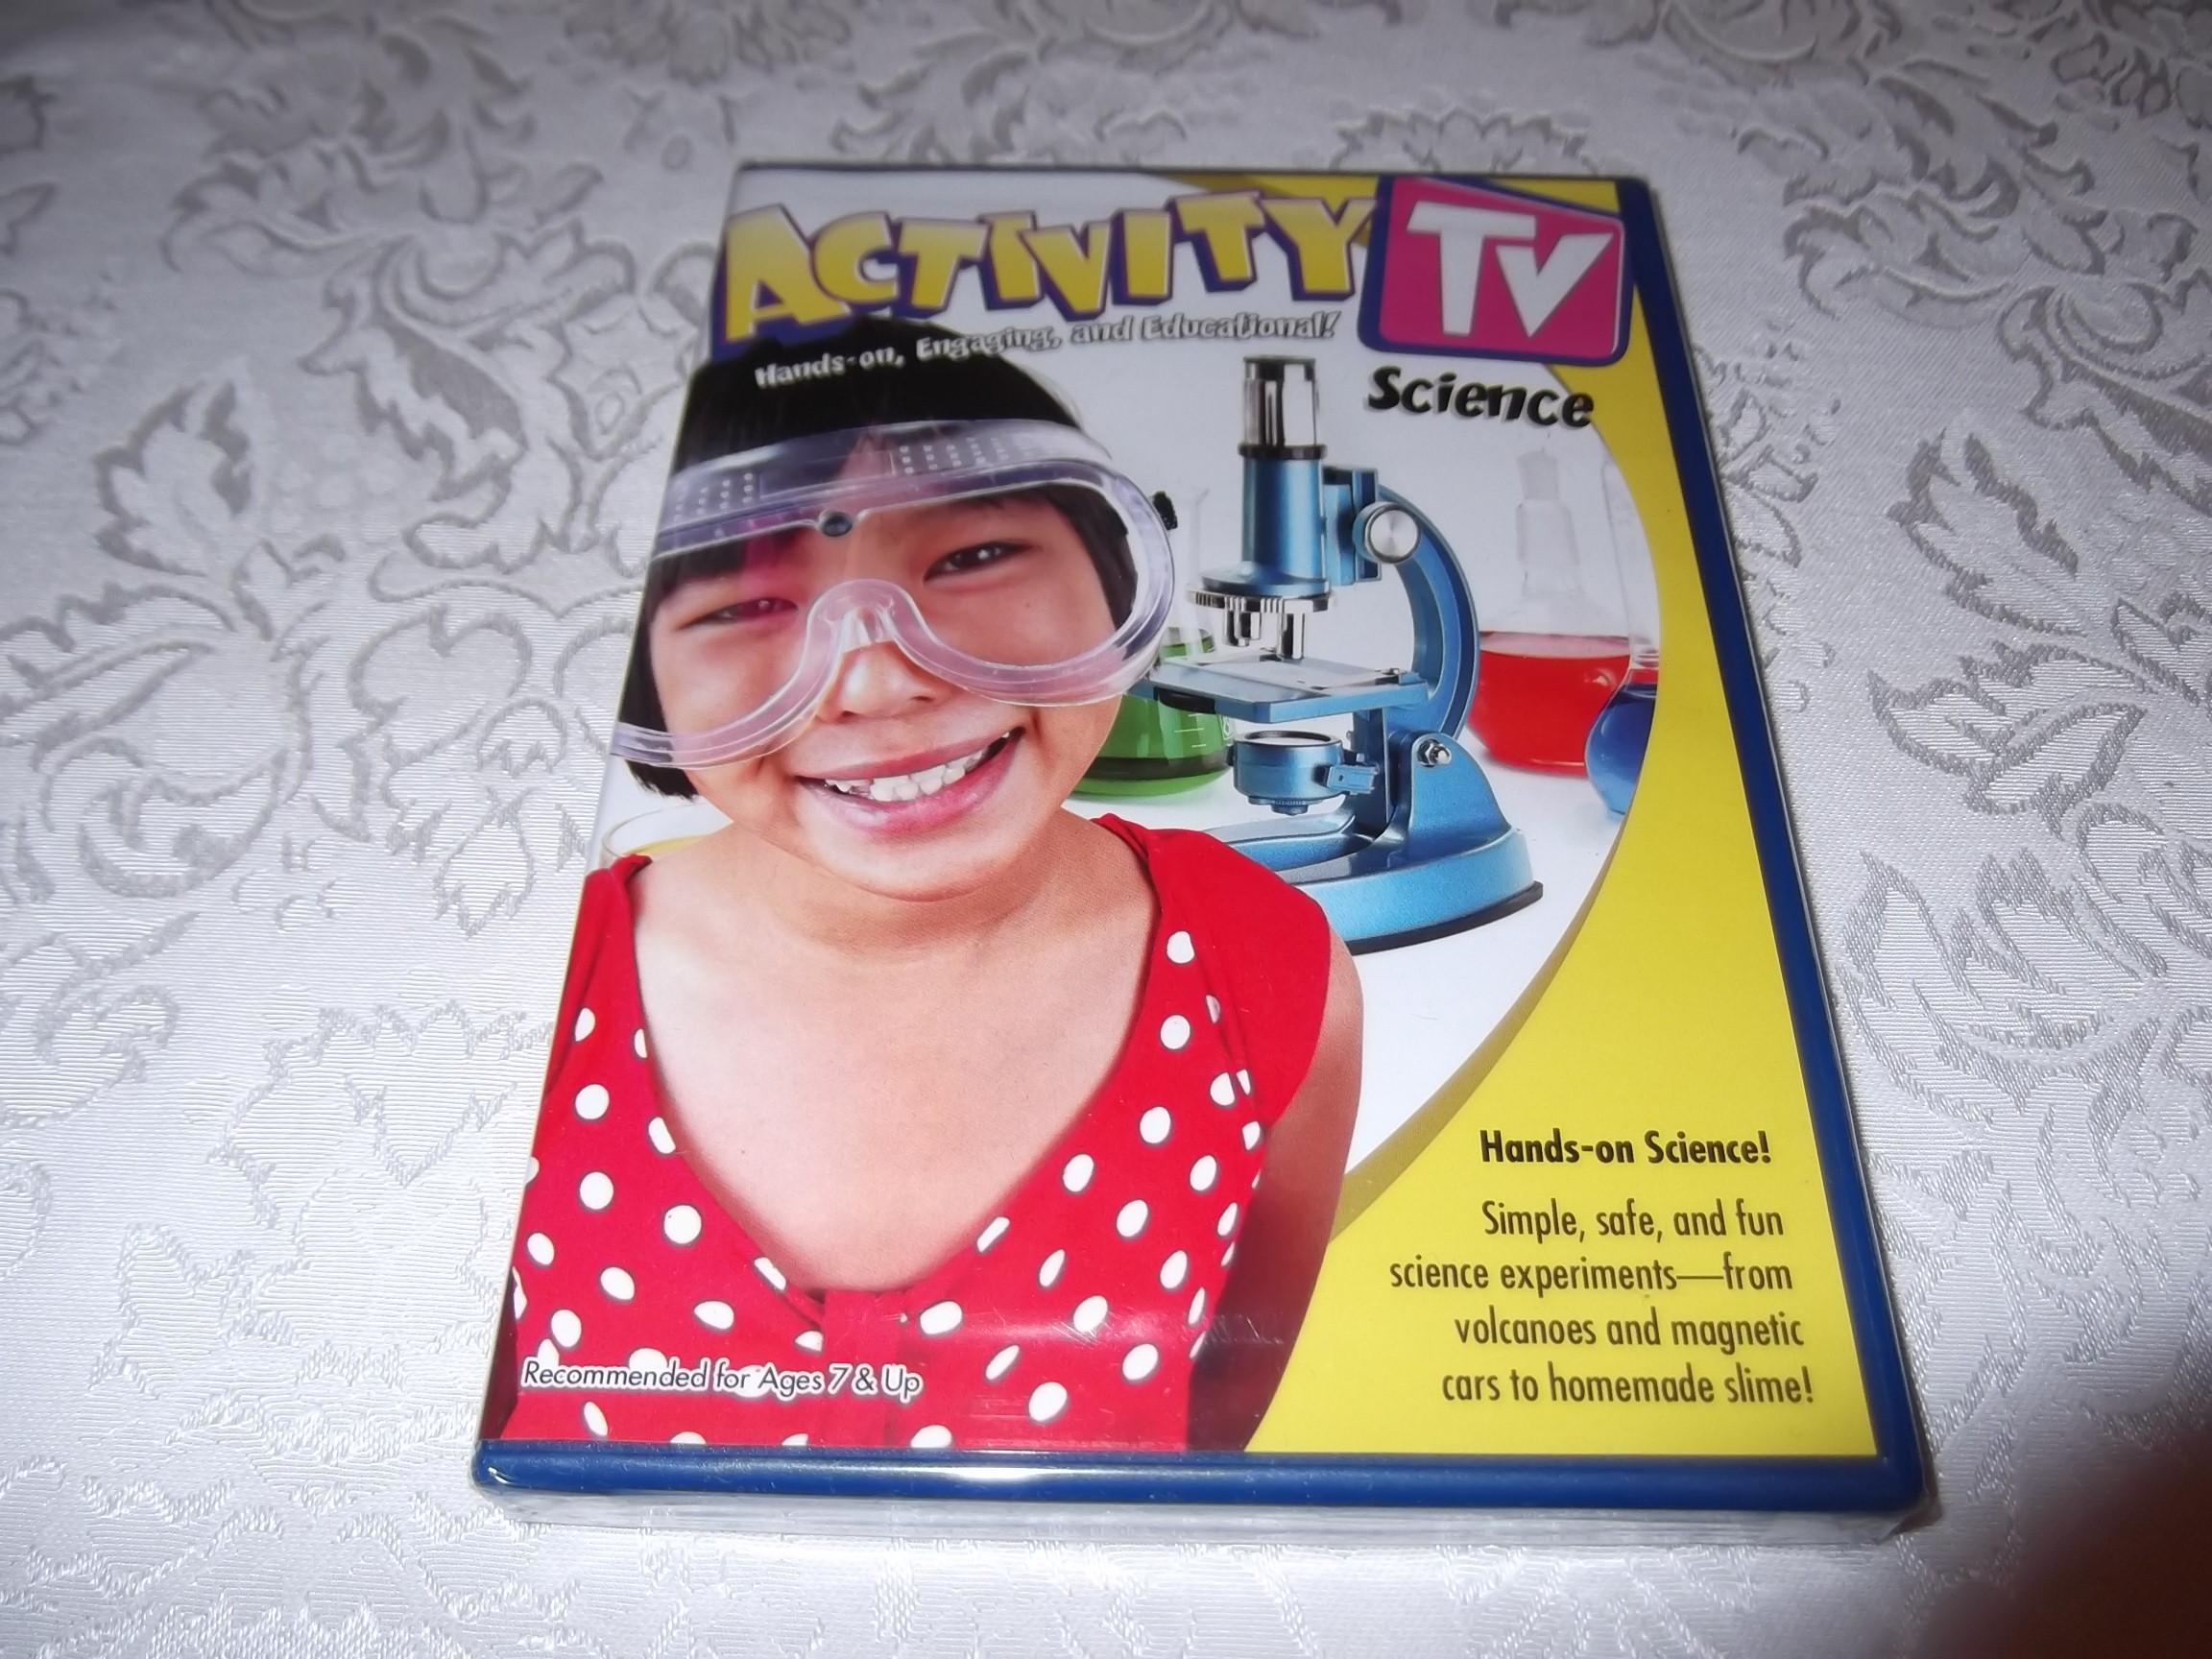 Activity TV Science Hands-on Science brand new sealed DVD